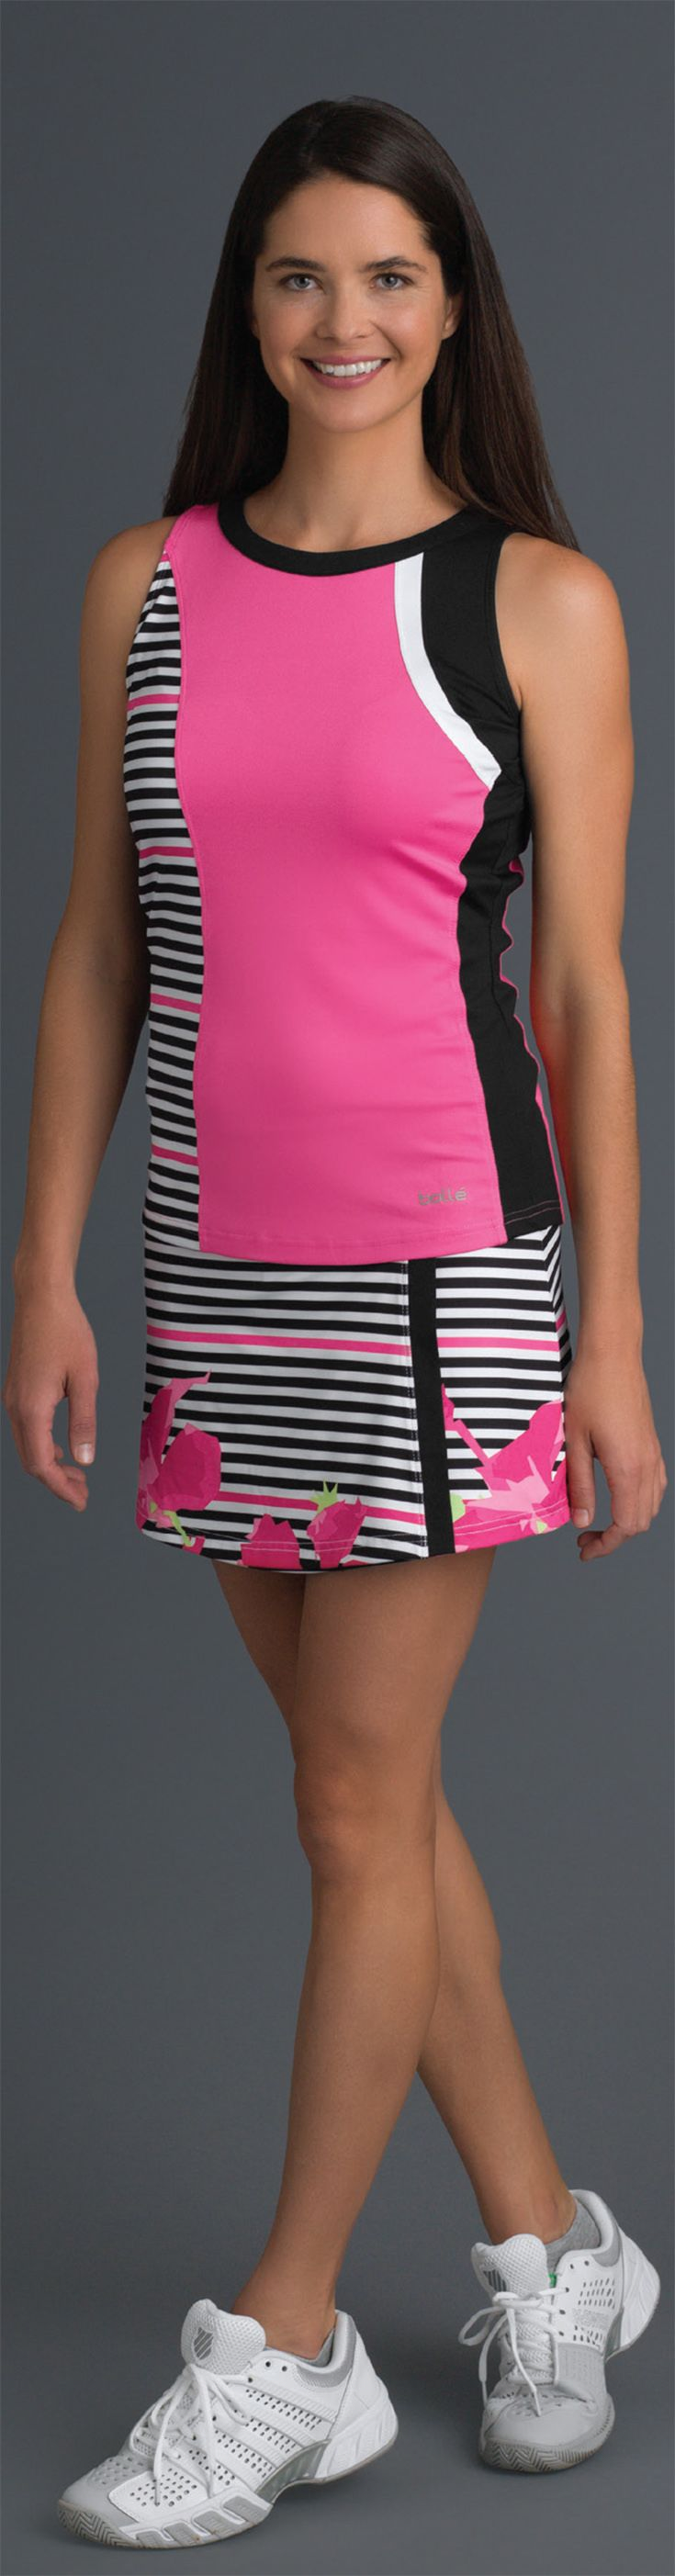 Check out Bolle's Verona women's tennis collection for spring 2018. This premier collection of women's tennis apparel includes tennis skirts, tops, and tanks in hibiscus pink, black, white and verona print fabric for the ideal update to your look for the season. Shop more Bolle tennis activewear at MidwestSports.com.